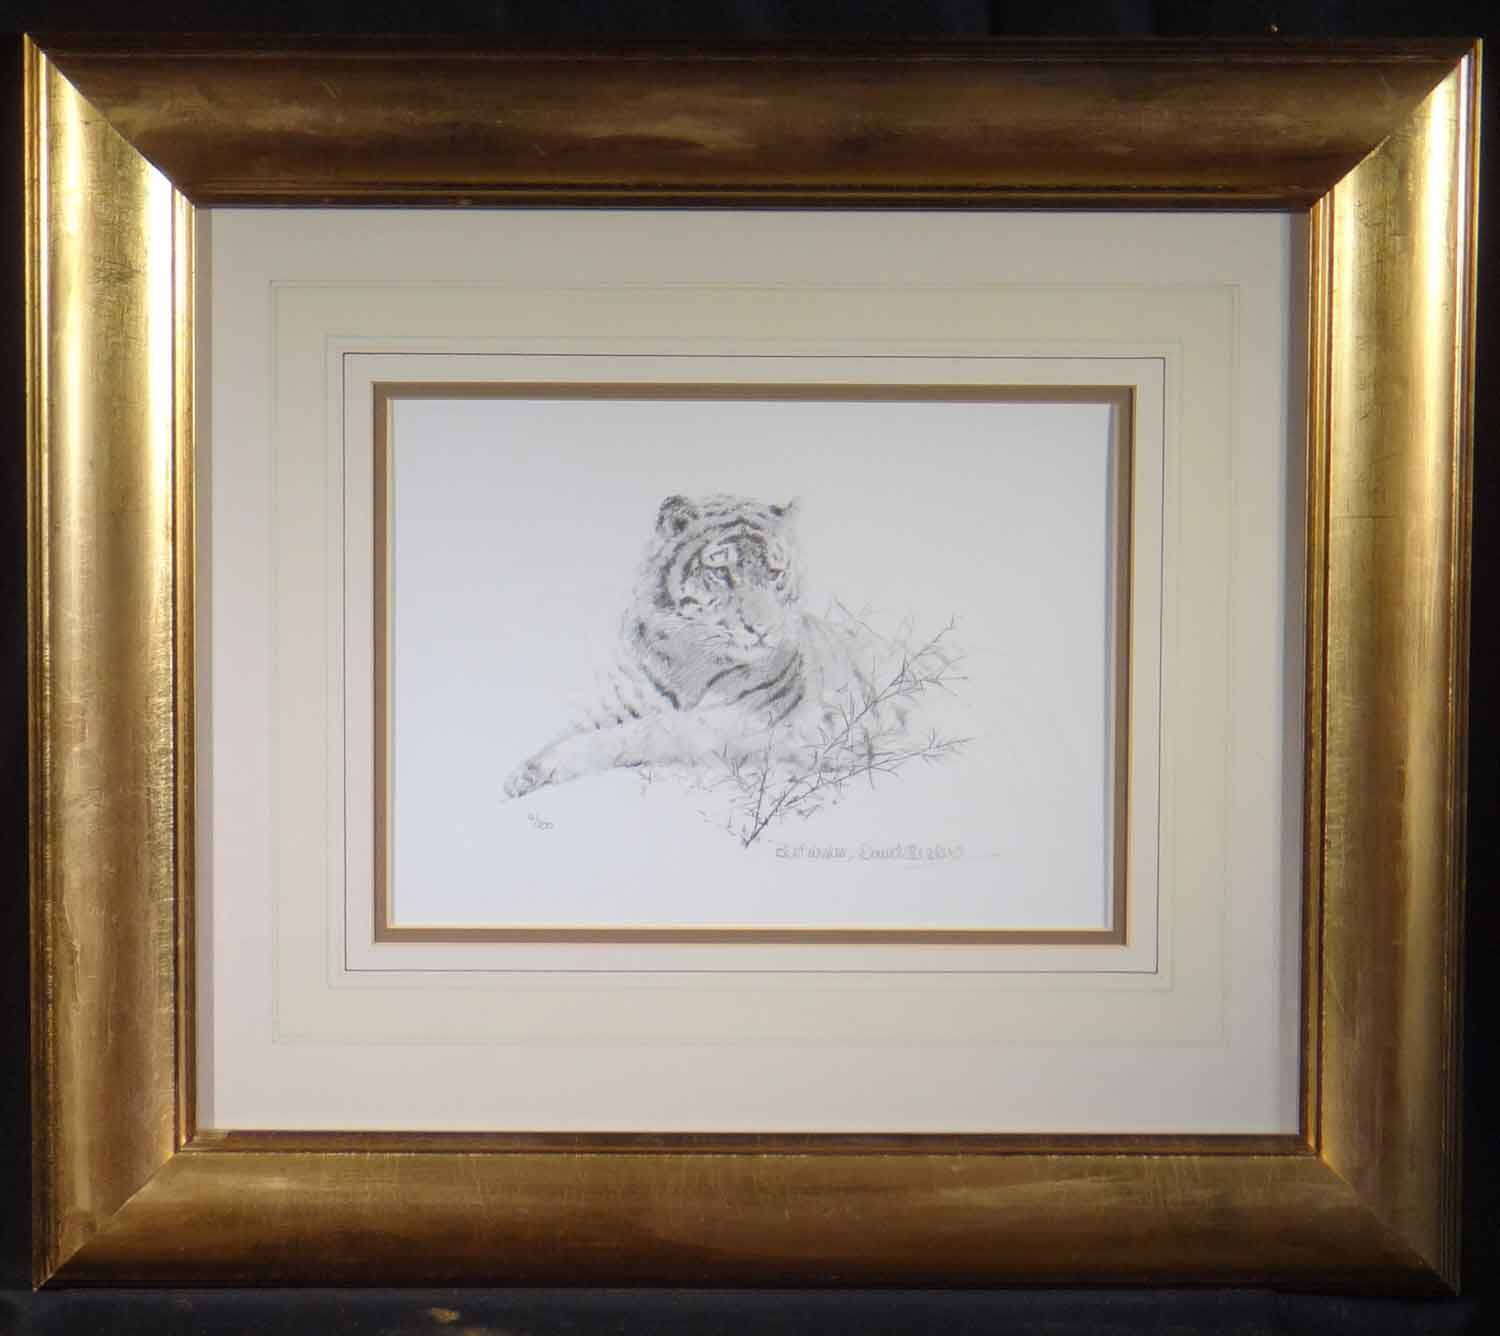 david shepherd Portrait of a Tiger sketch